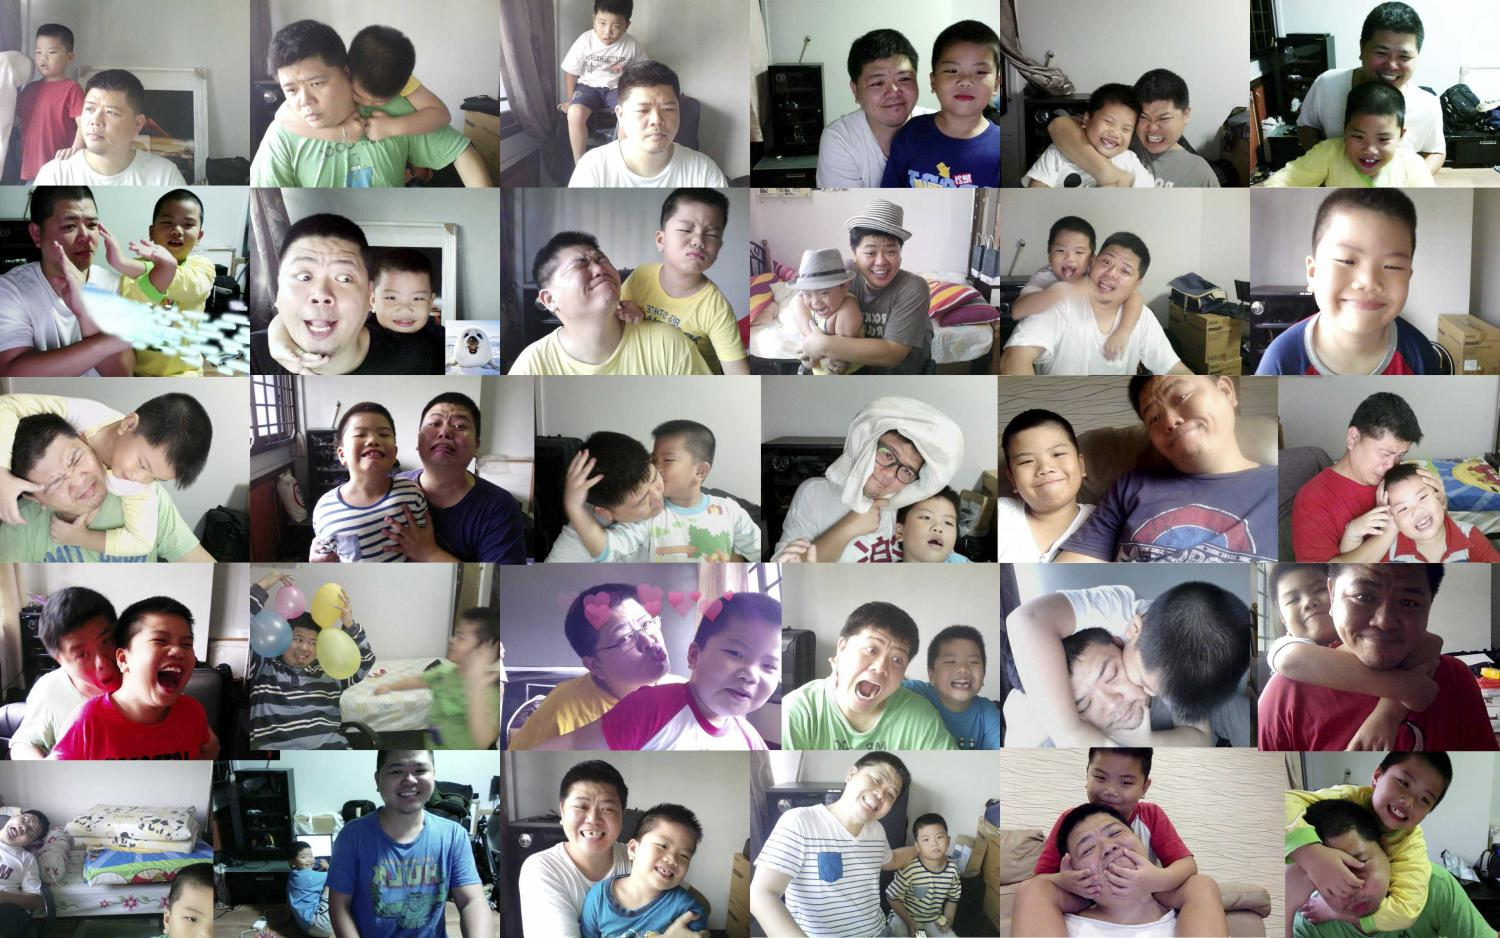 Autism may have set Jun Le apart from others in some ways, but it has also brought us closer to our friends and family.